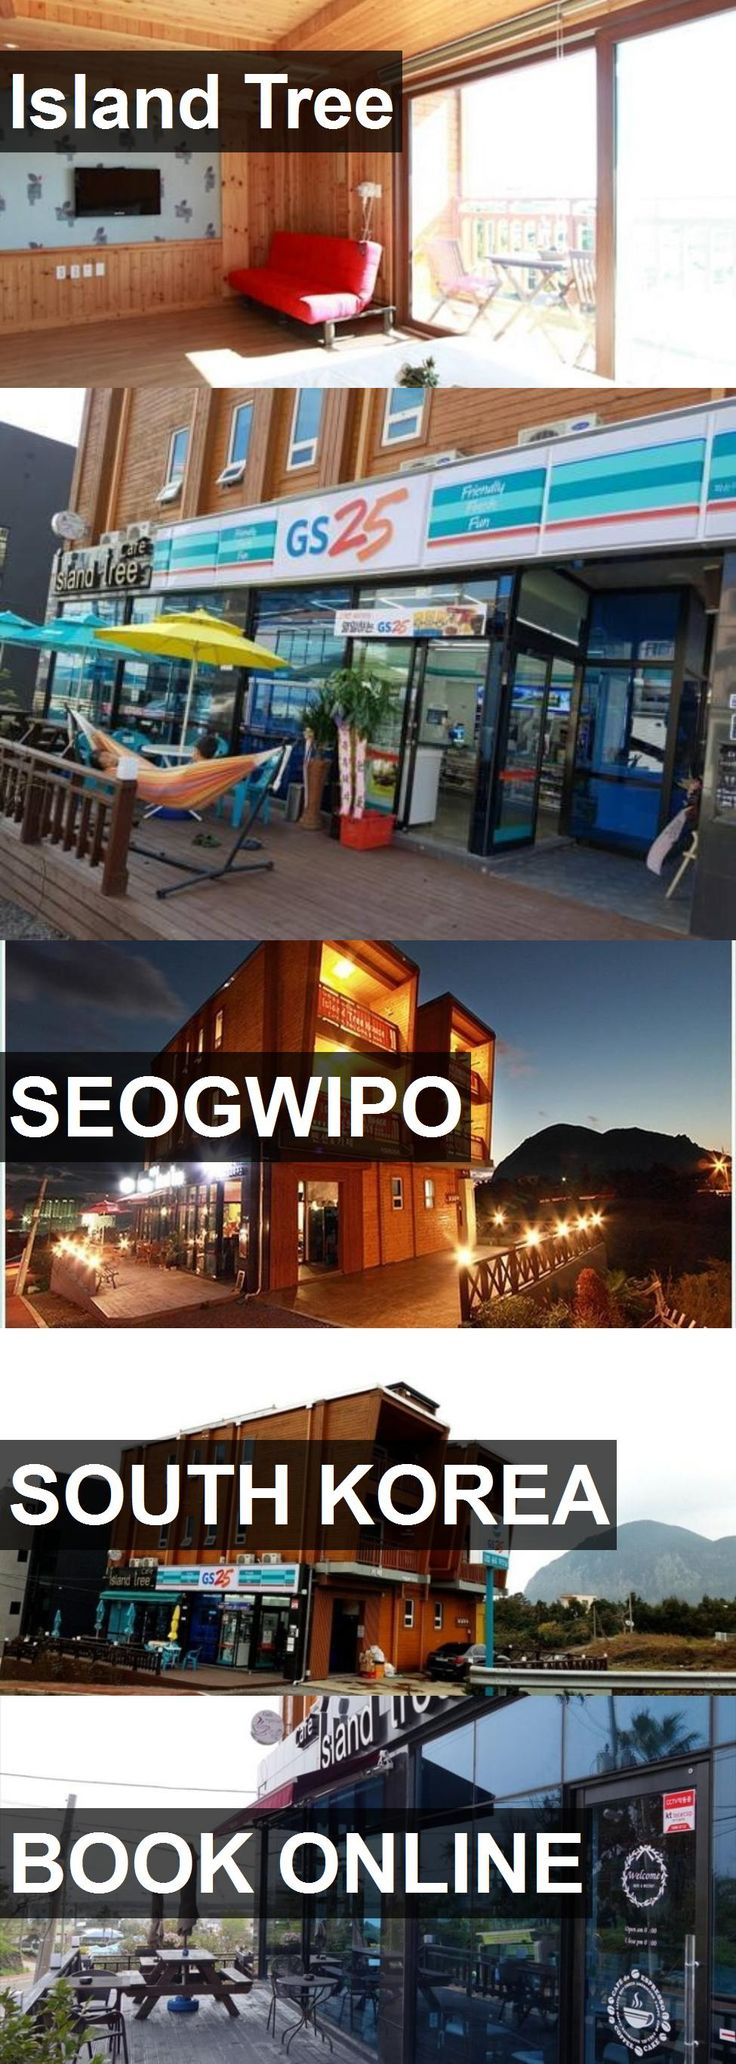 Hotel Island Tree in Seogwipo, South Korea. For more information, photos, reviews and best prices please follow the link. #SouthKorea #Seogwipo #travel #vacation #hotel